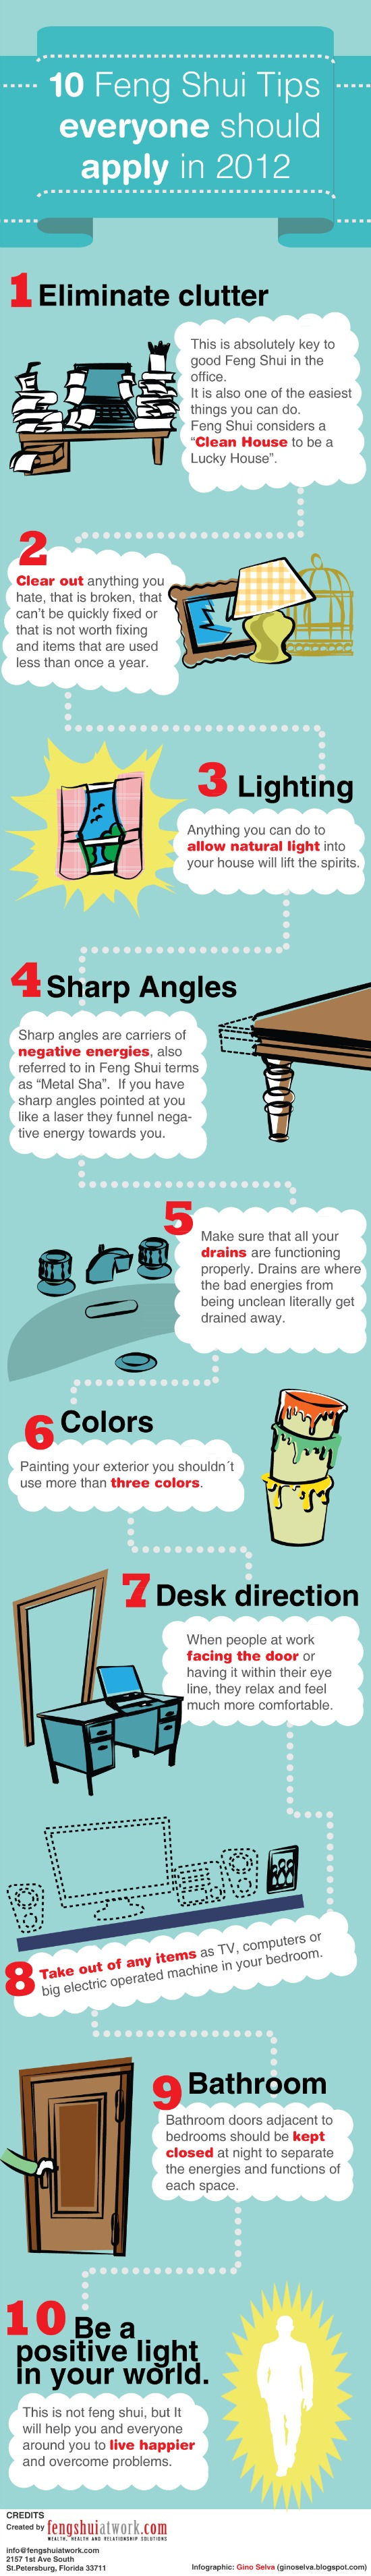 Feng Shui Tips 2012-Infographic